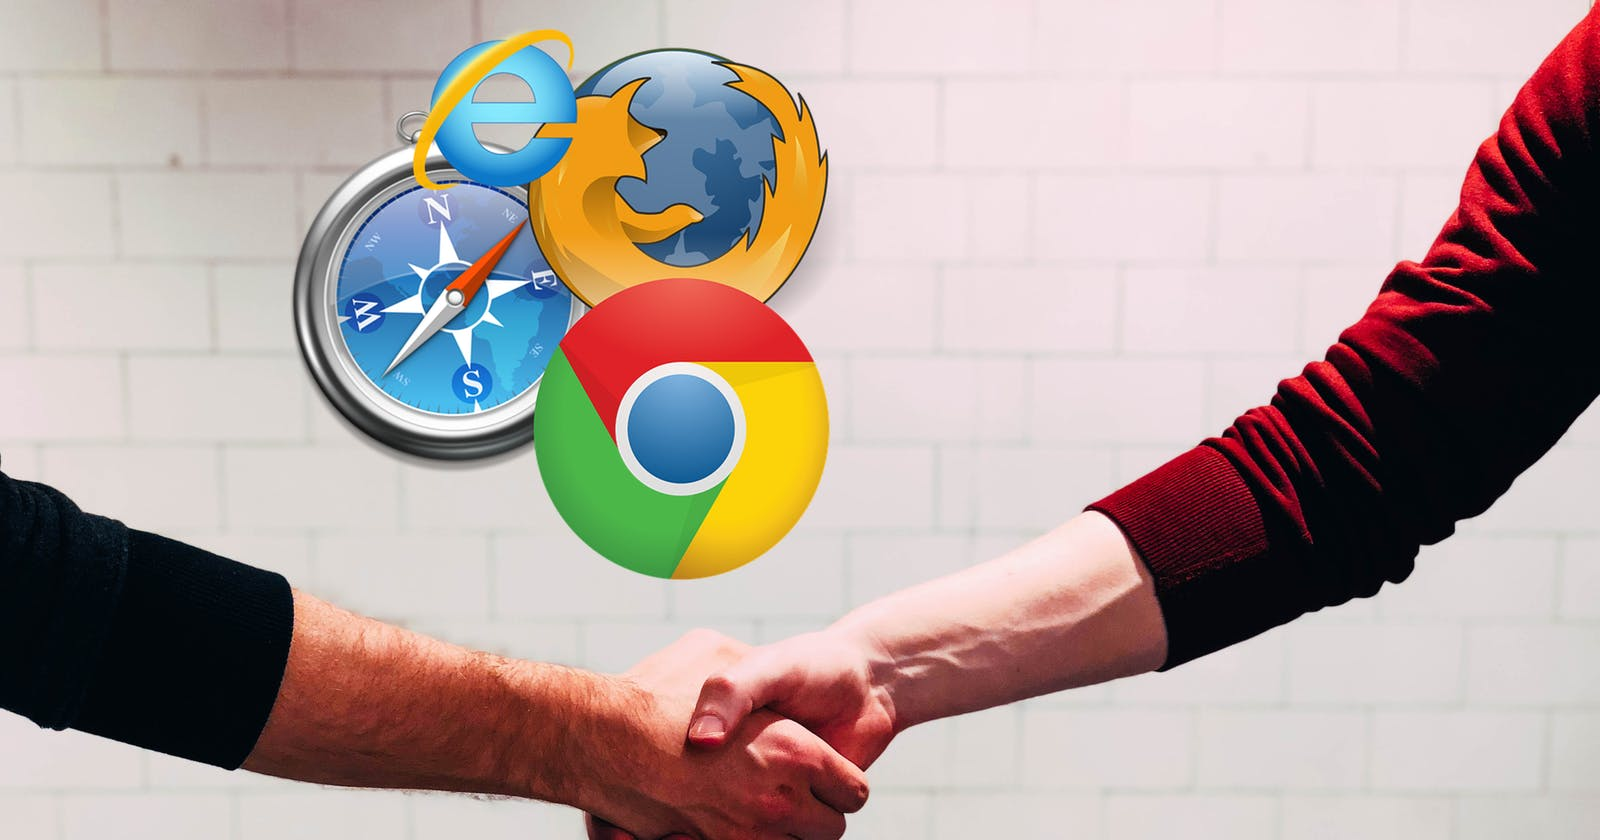 How to create true-cross browser extensions?